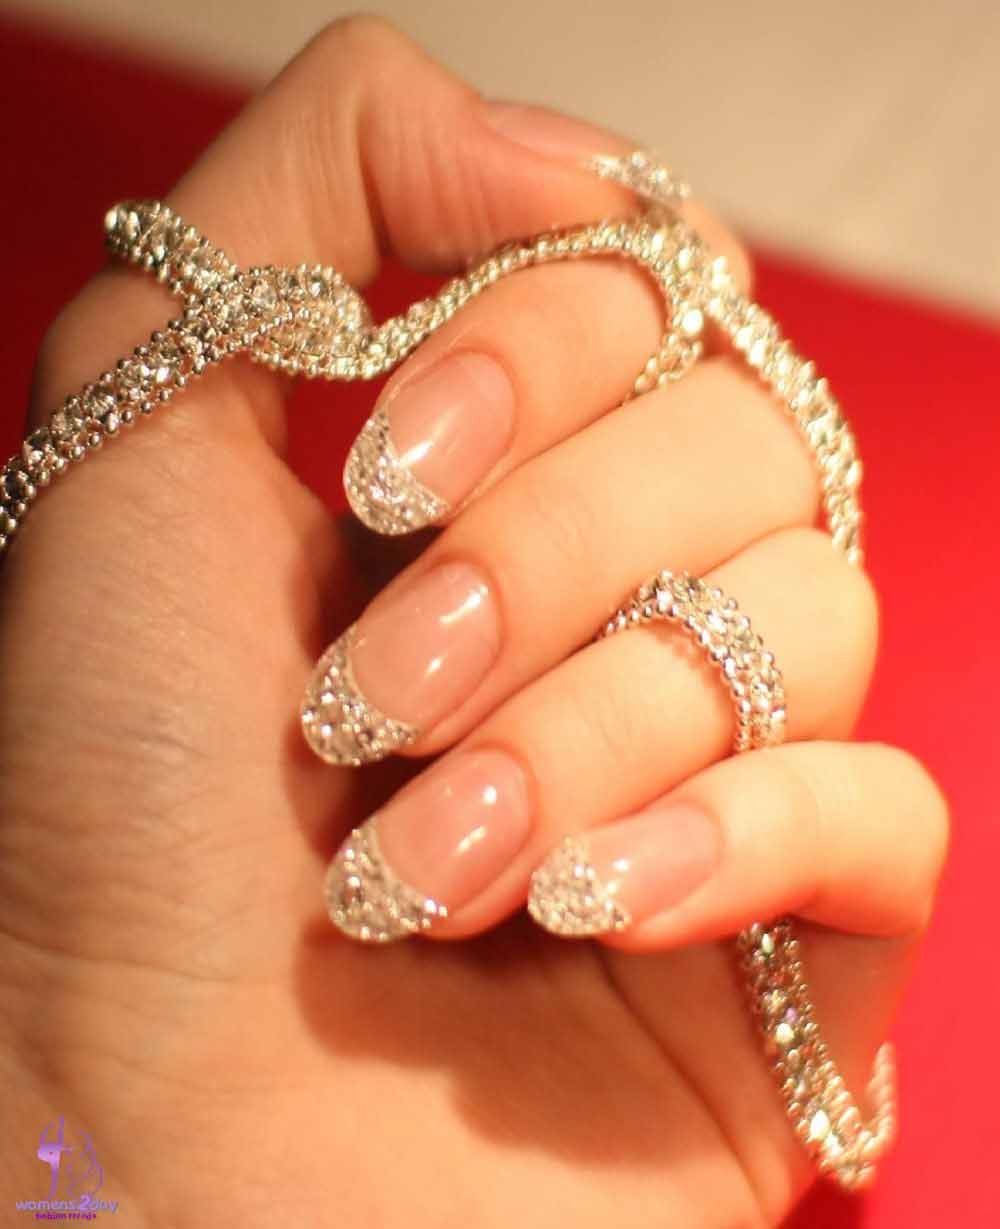 Best Teen Nail Art Designs 2019 Nail Paint Ideas Fashioneven